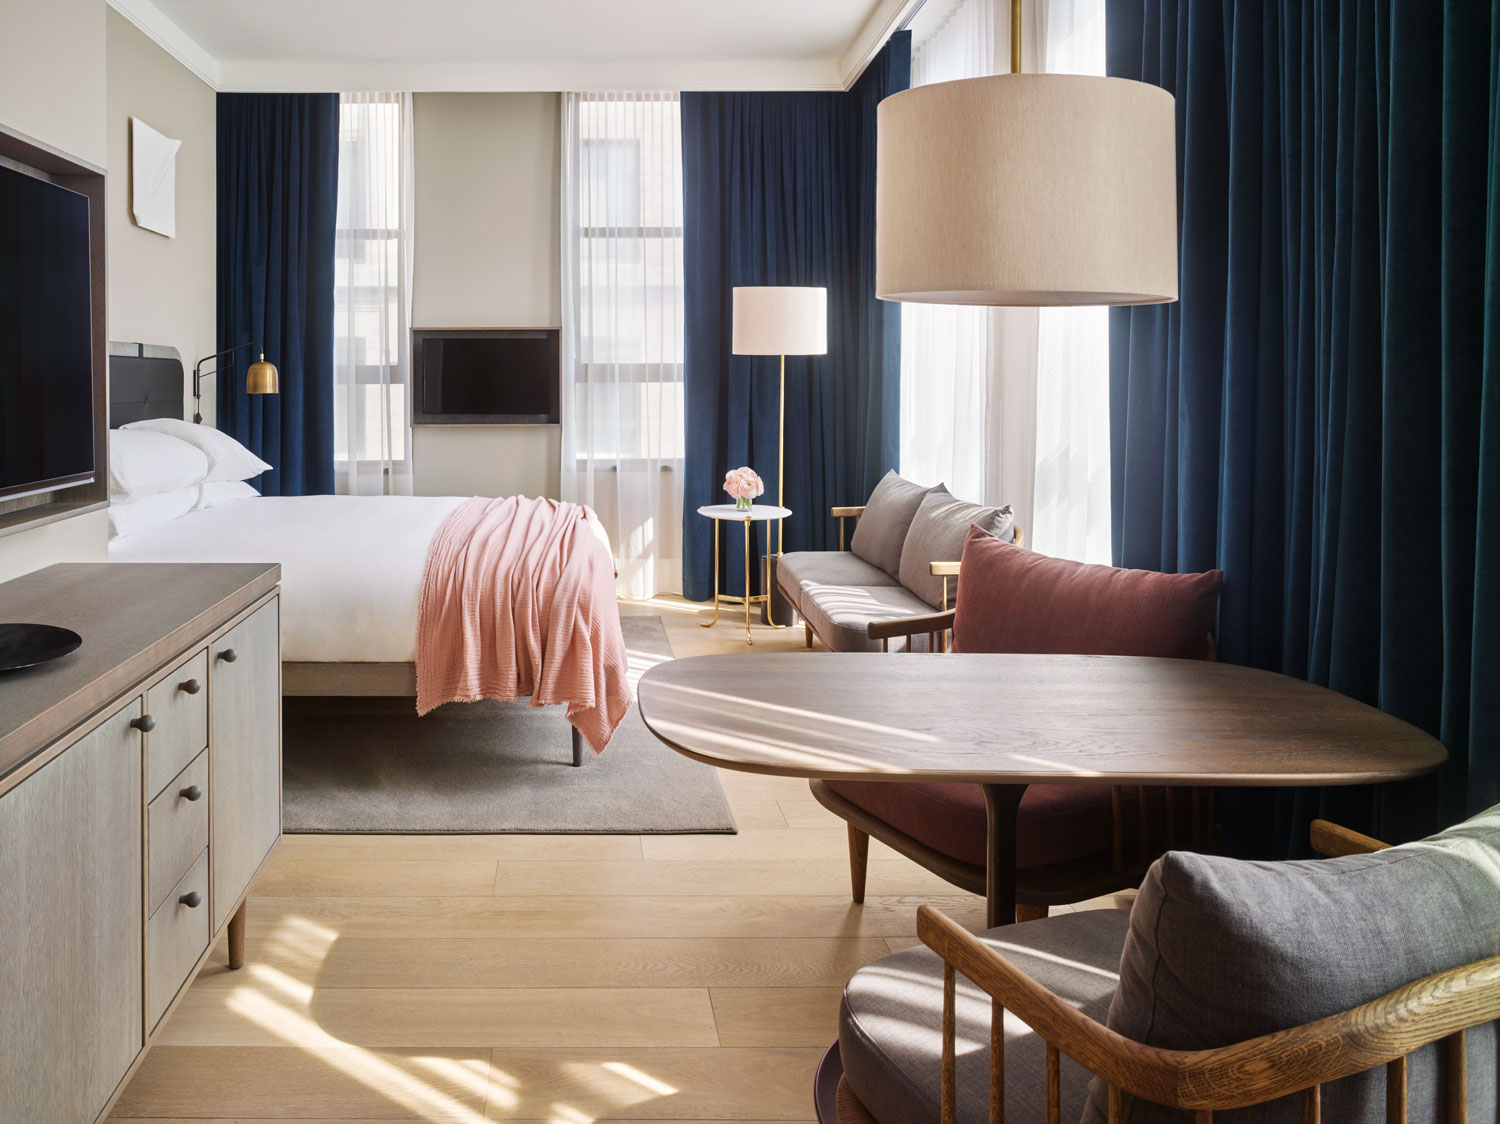 11 howard hotel opens in new york yellowtrace